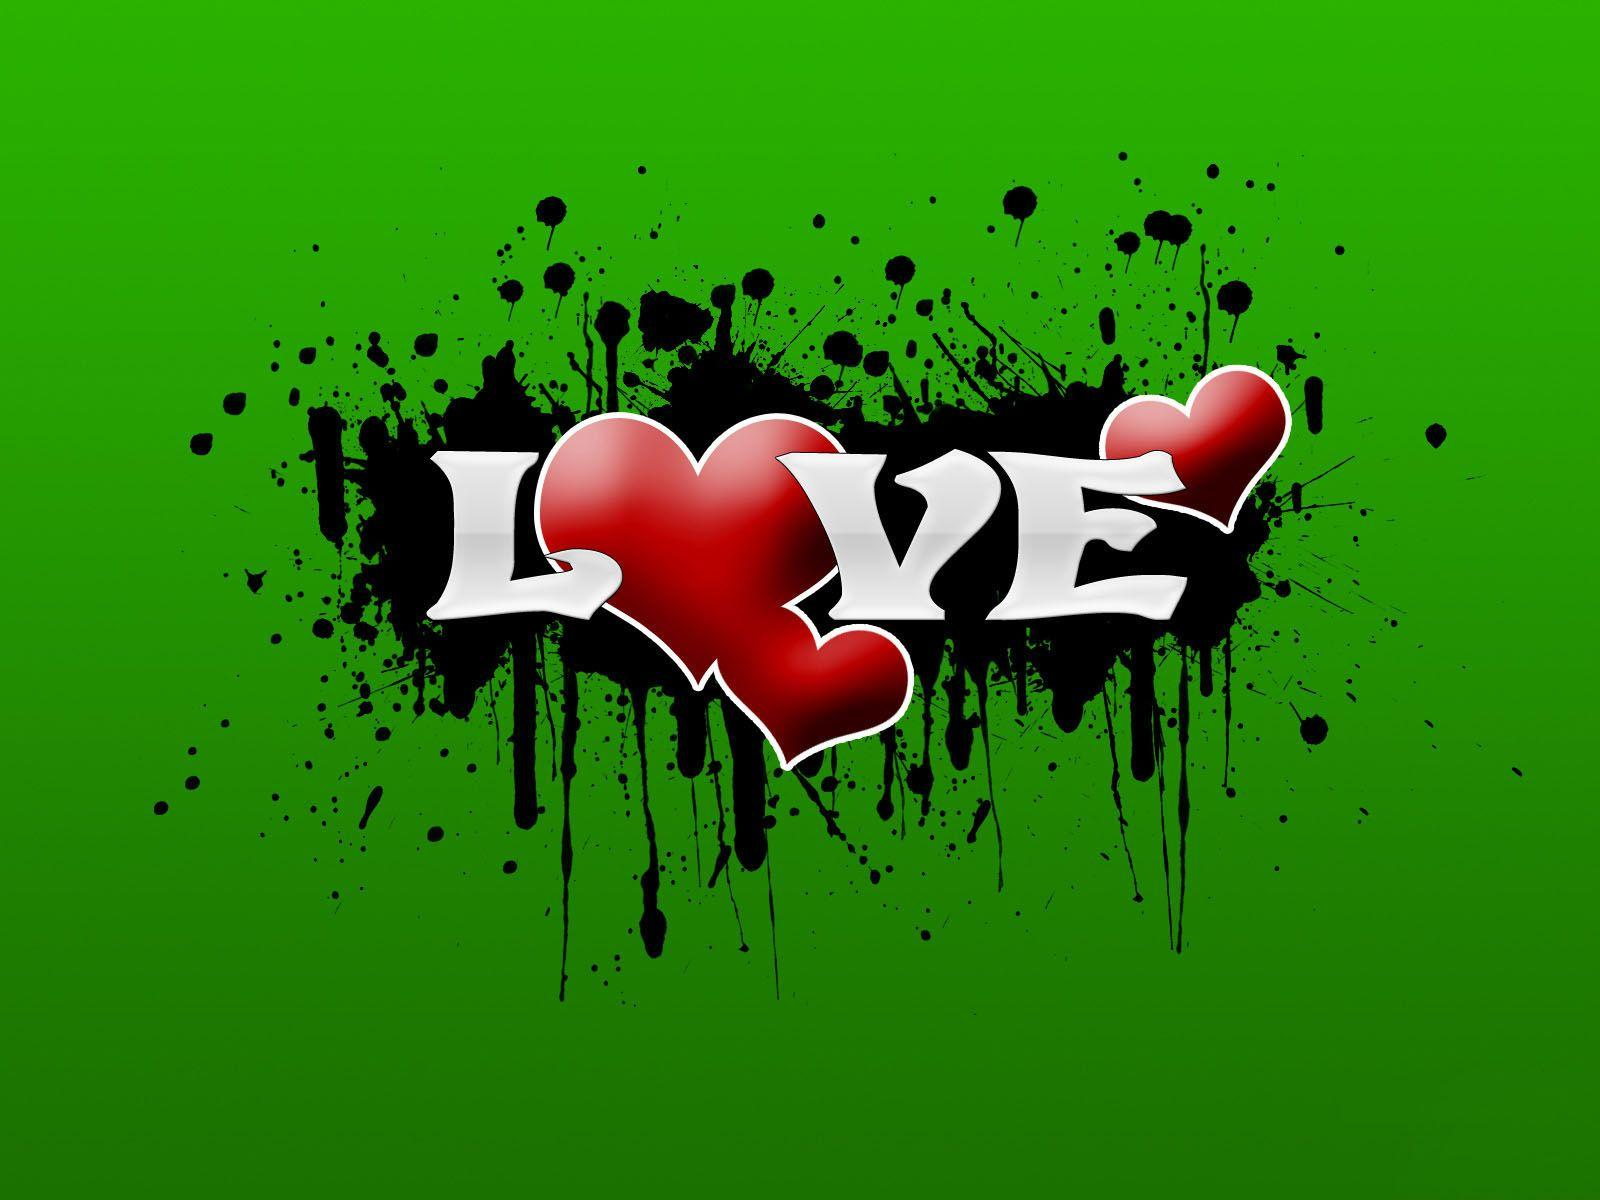 Love Wallpaper Photo Gallery : Love Wallpapers 3D - Wallpaper cave